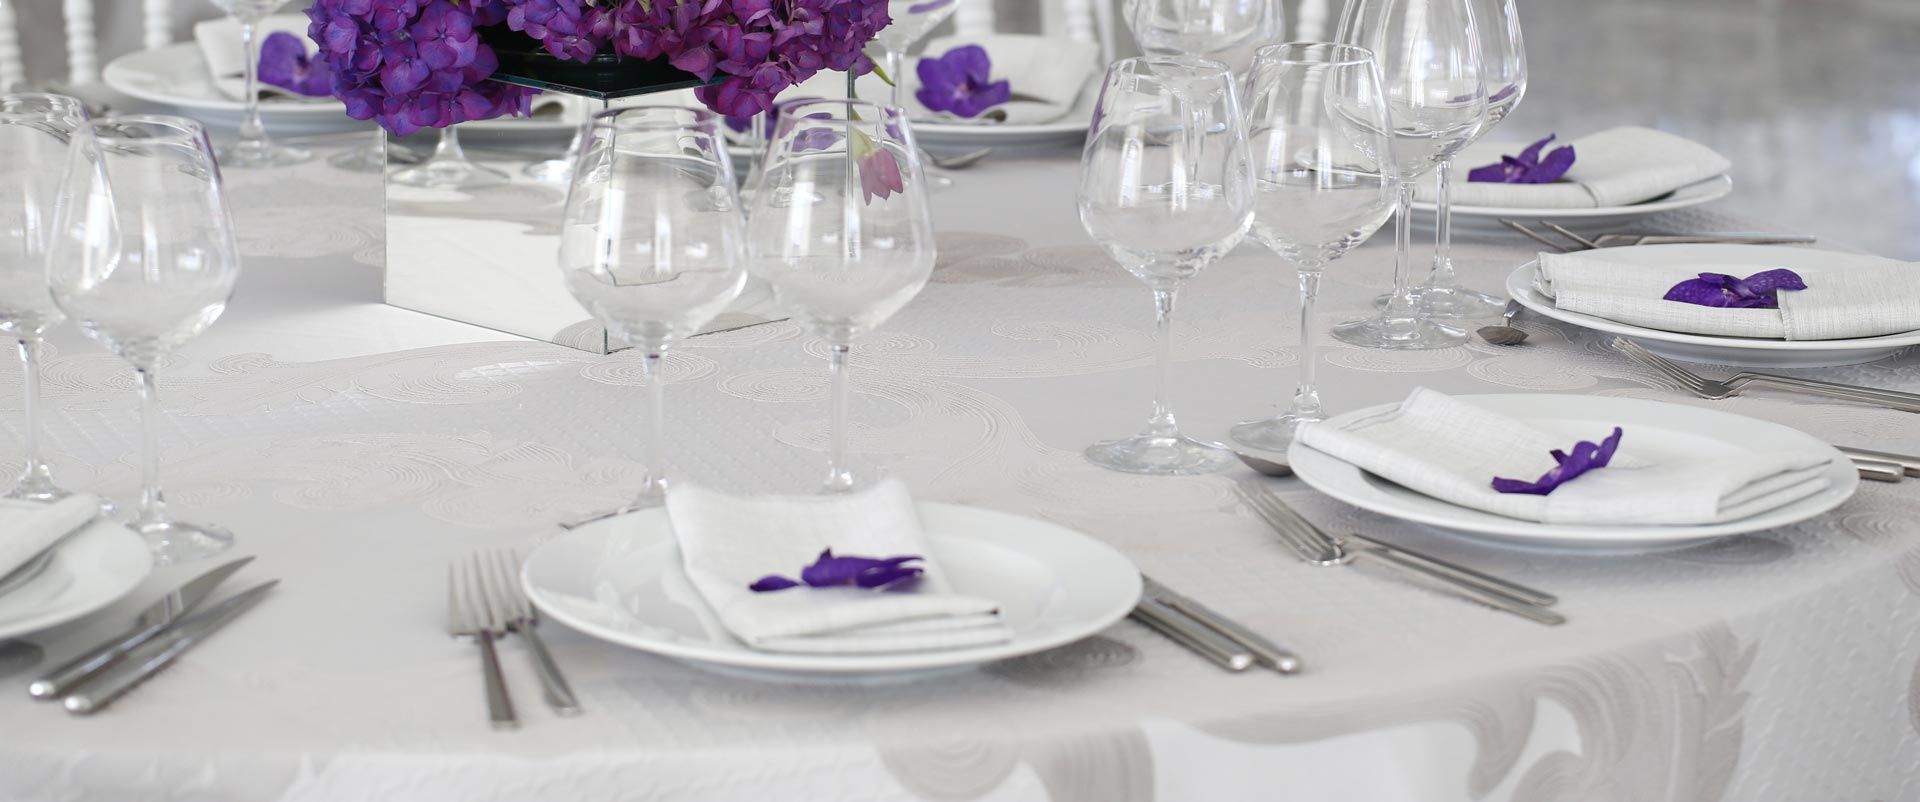 turn-your-event-into-a-fine-dining-experience-linen